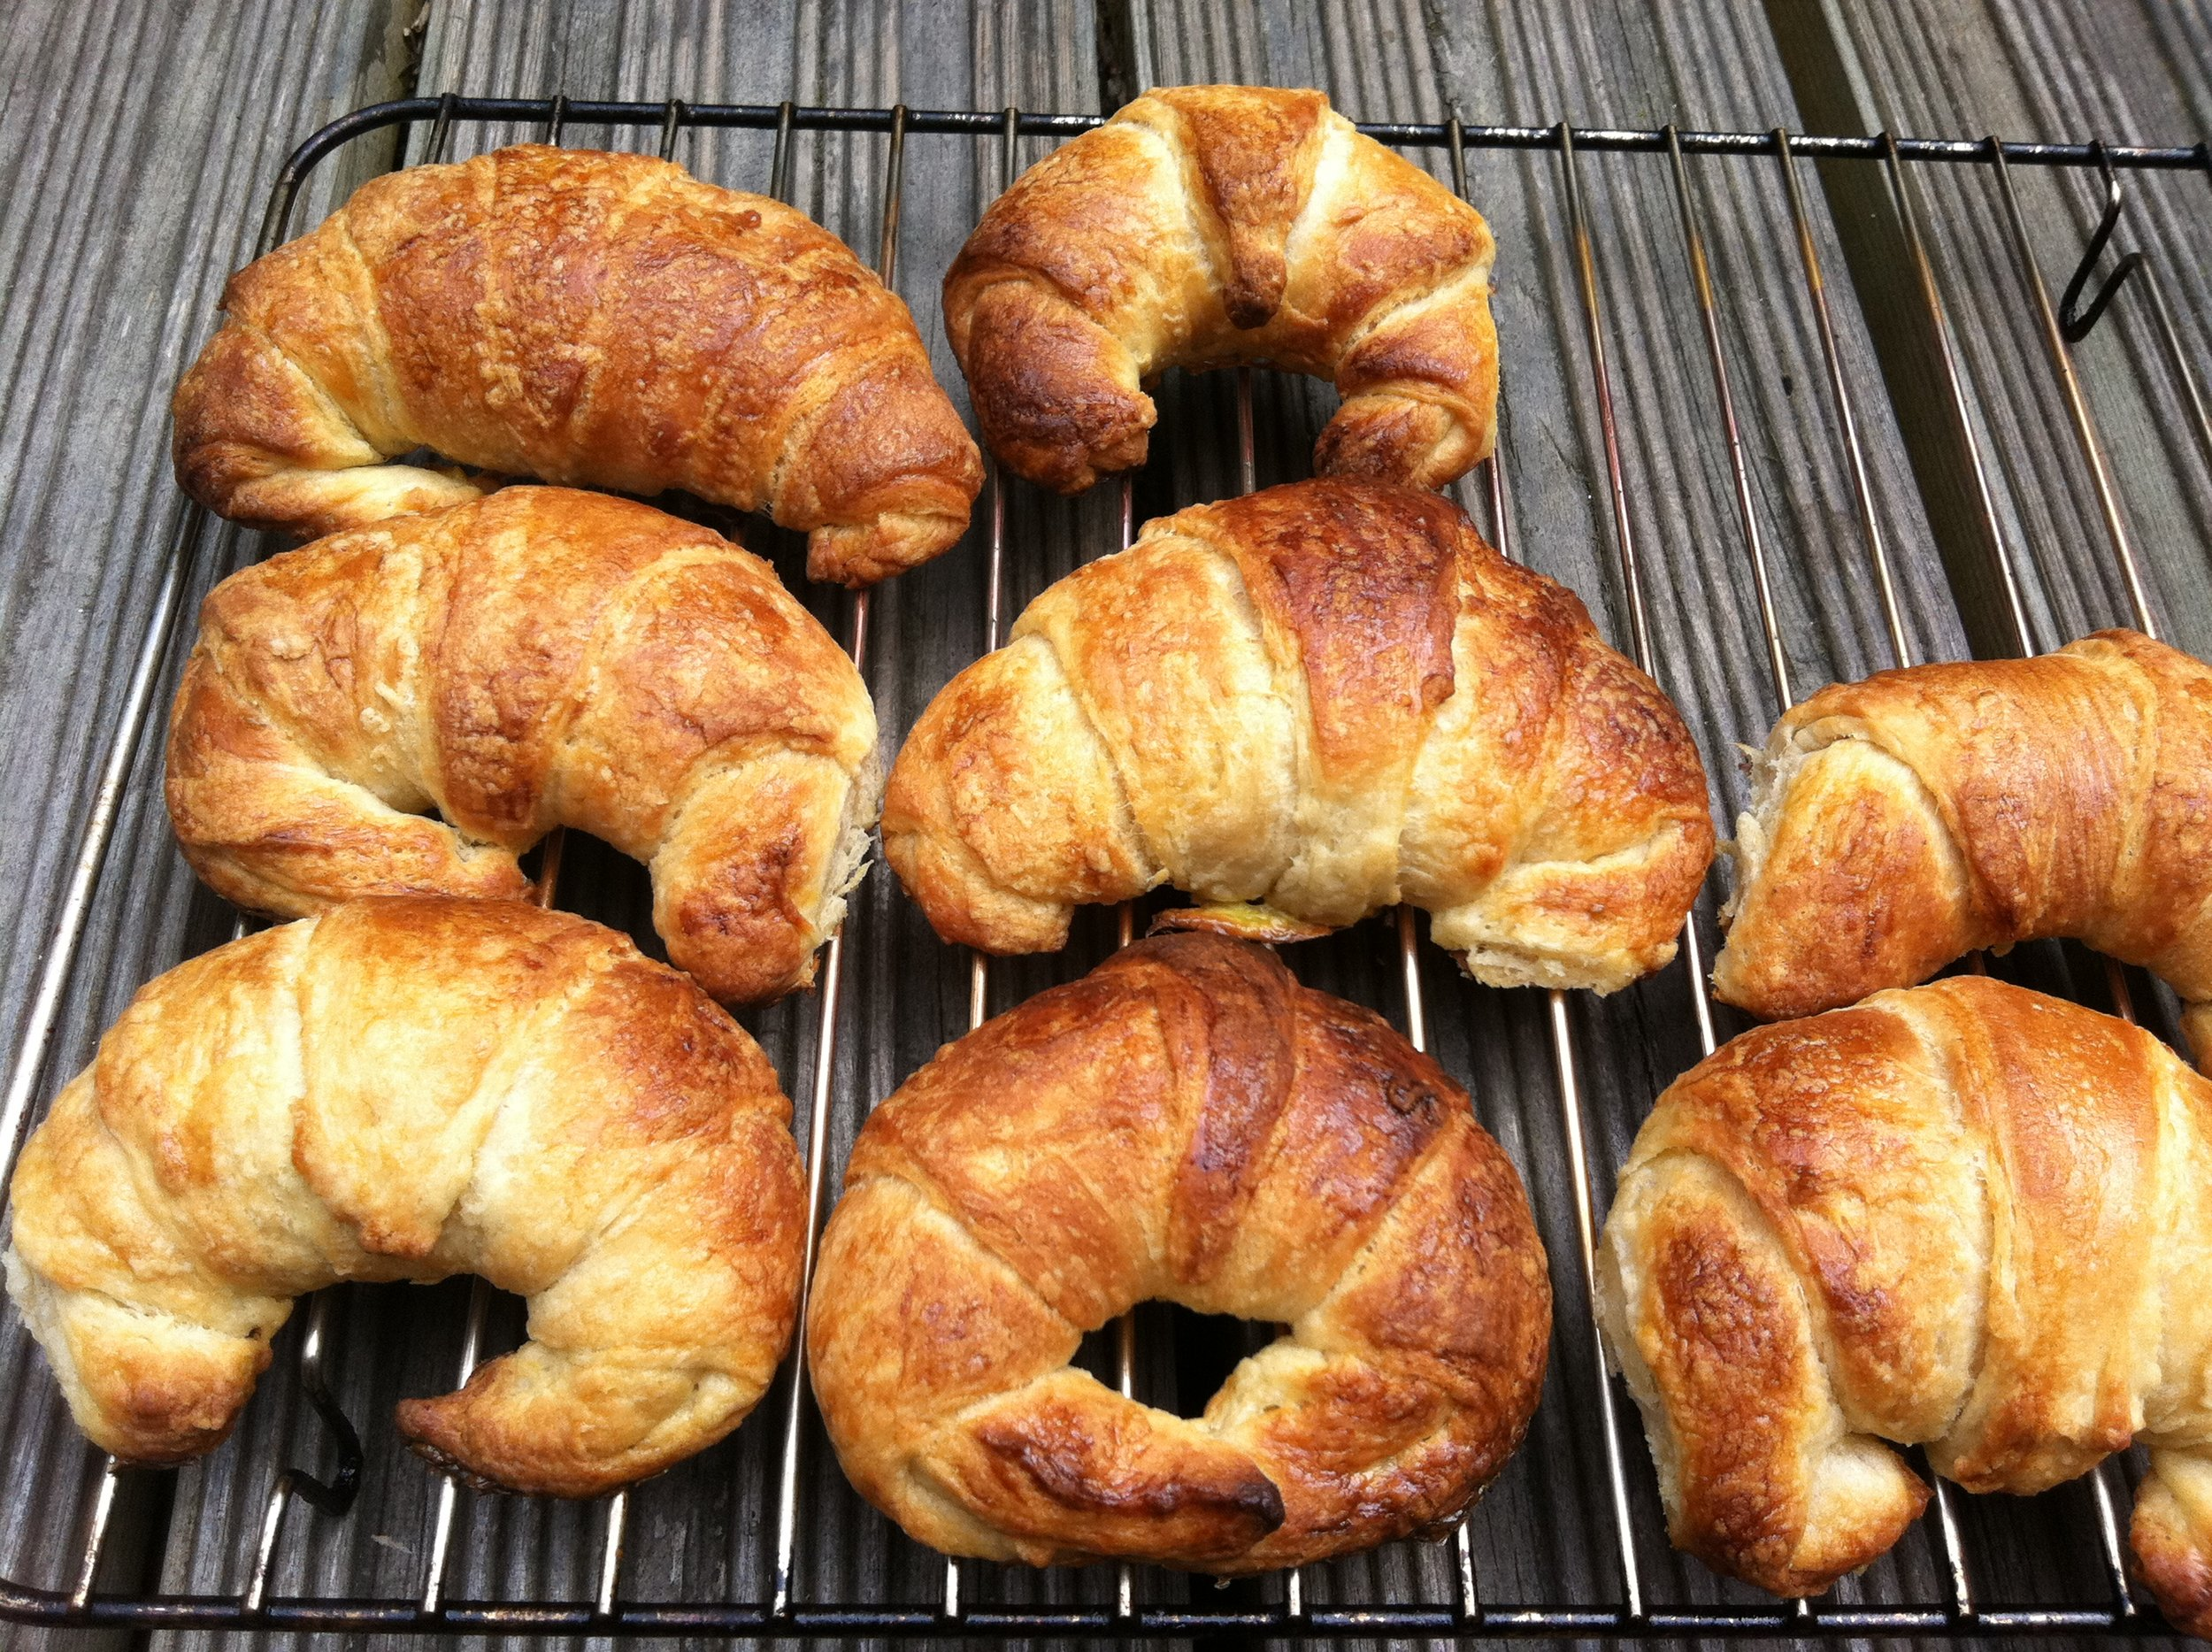 breakfast_croissants_bistro_catering.jpg